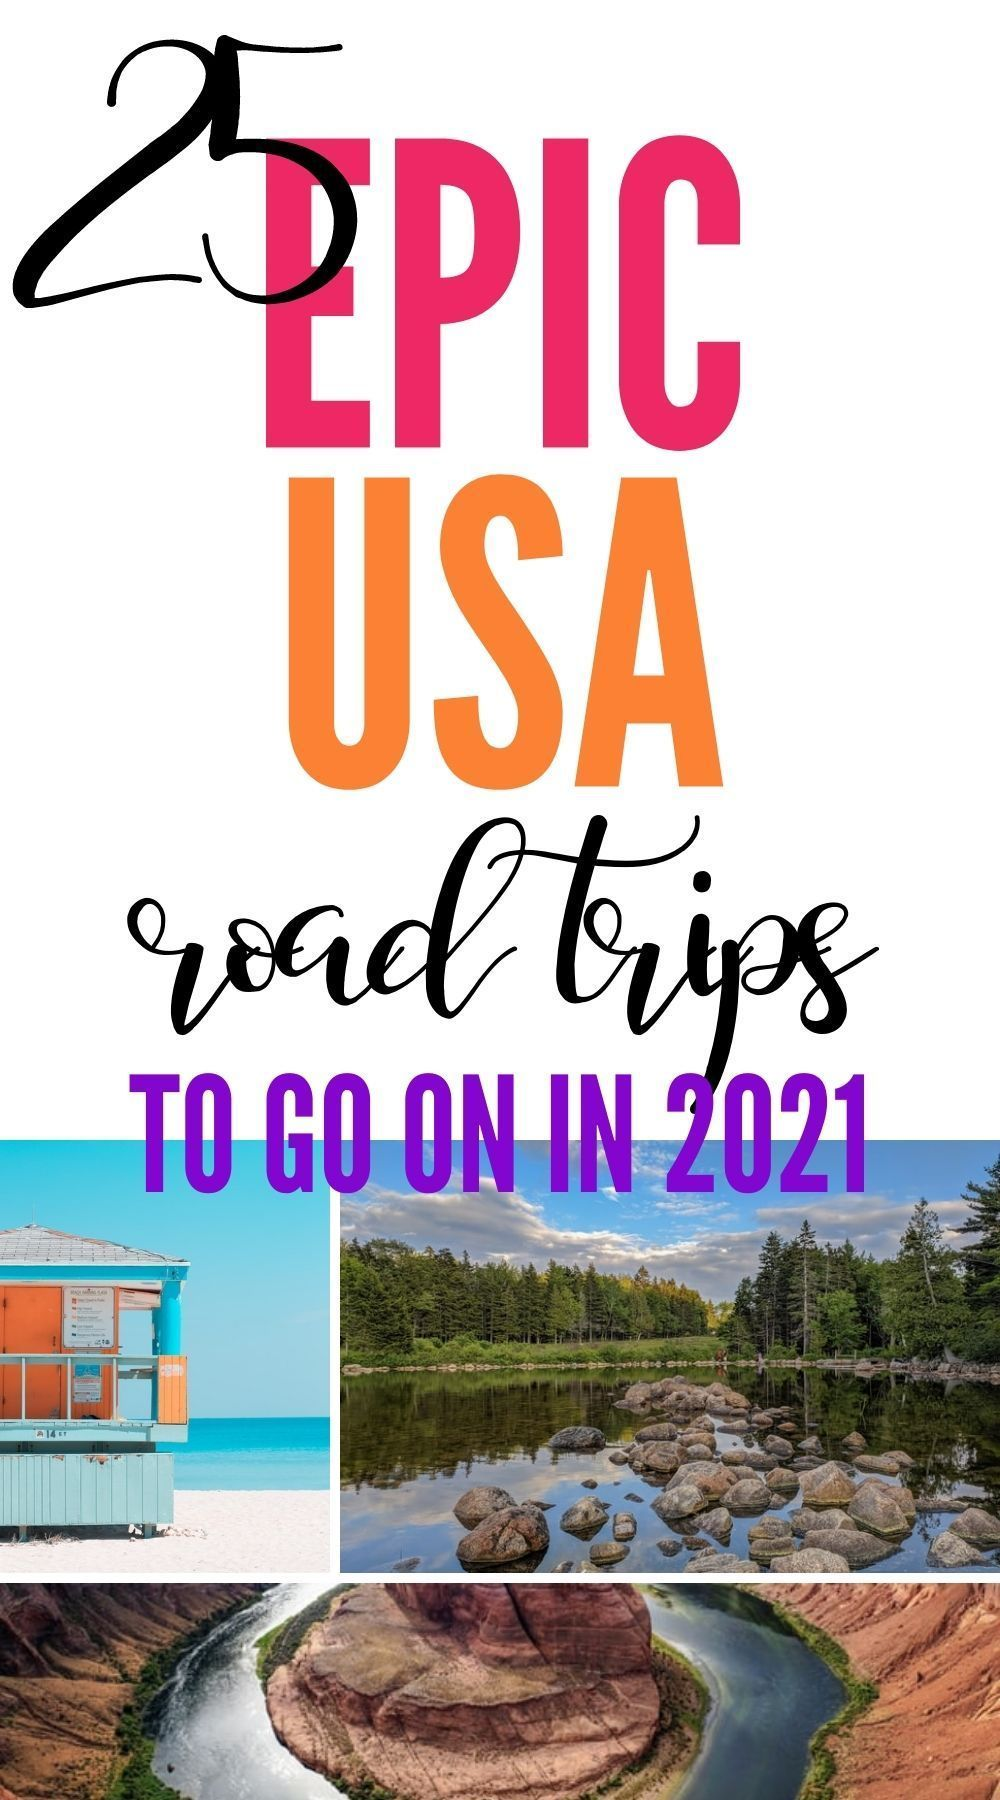 25 Epic USA Road Trips for Your Bucket List